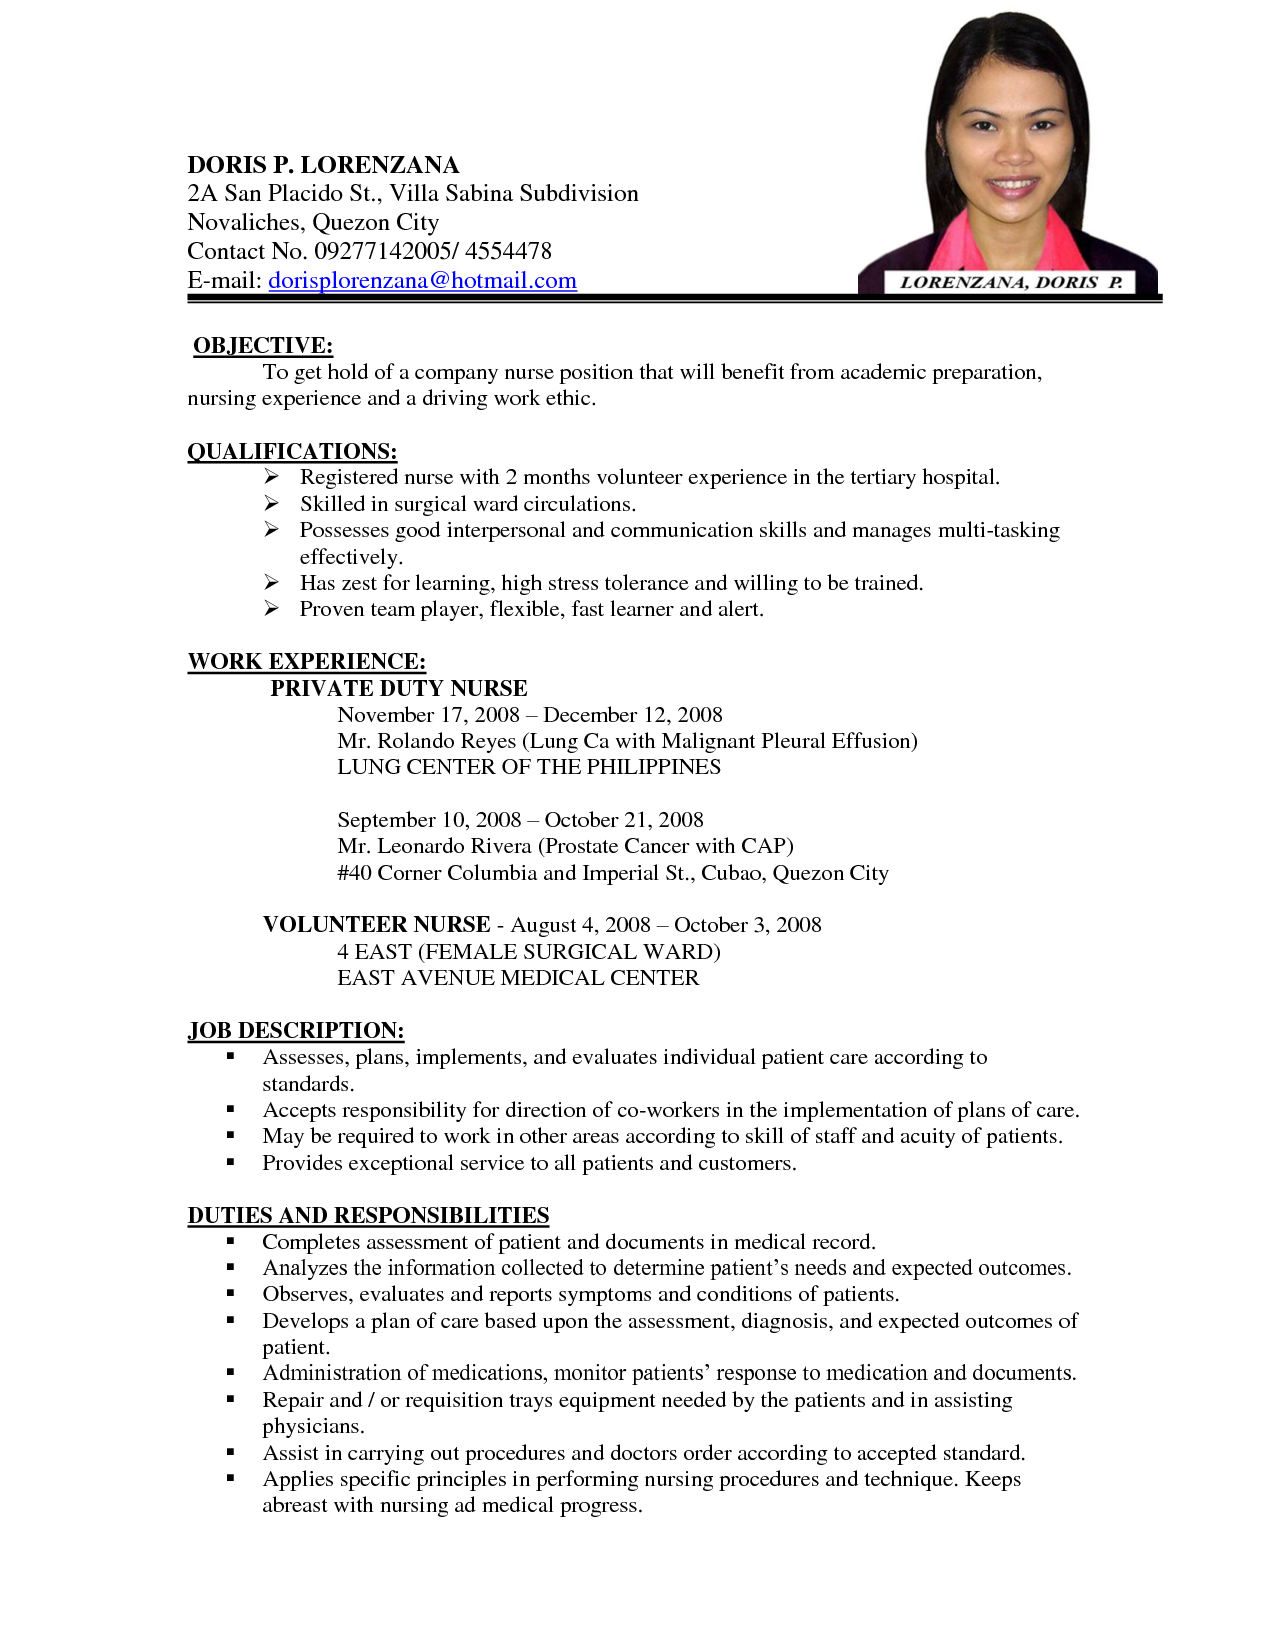 Resume Samples For Nurses – Resume Sample for Nurses